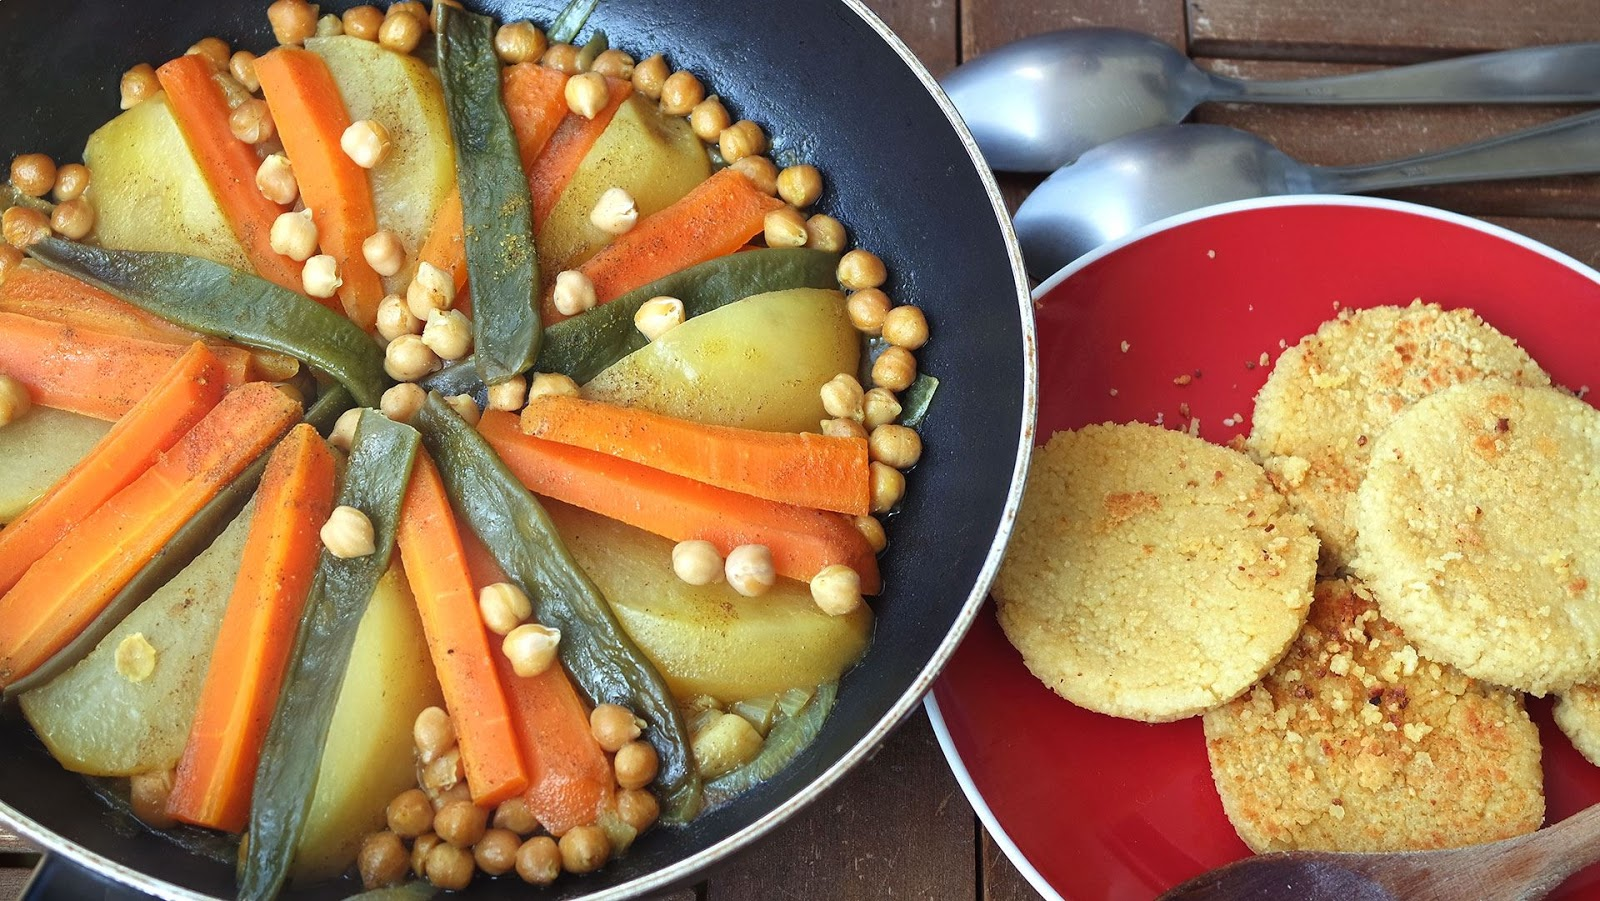 vegetable Tajine and semolina pancakes